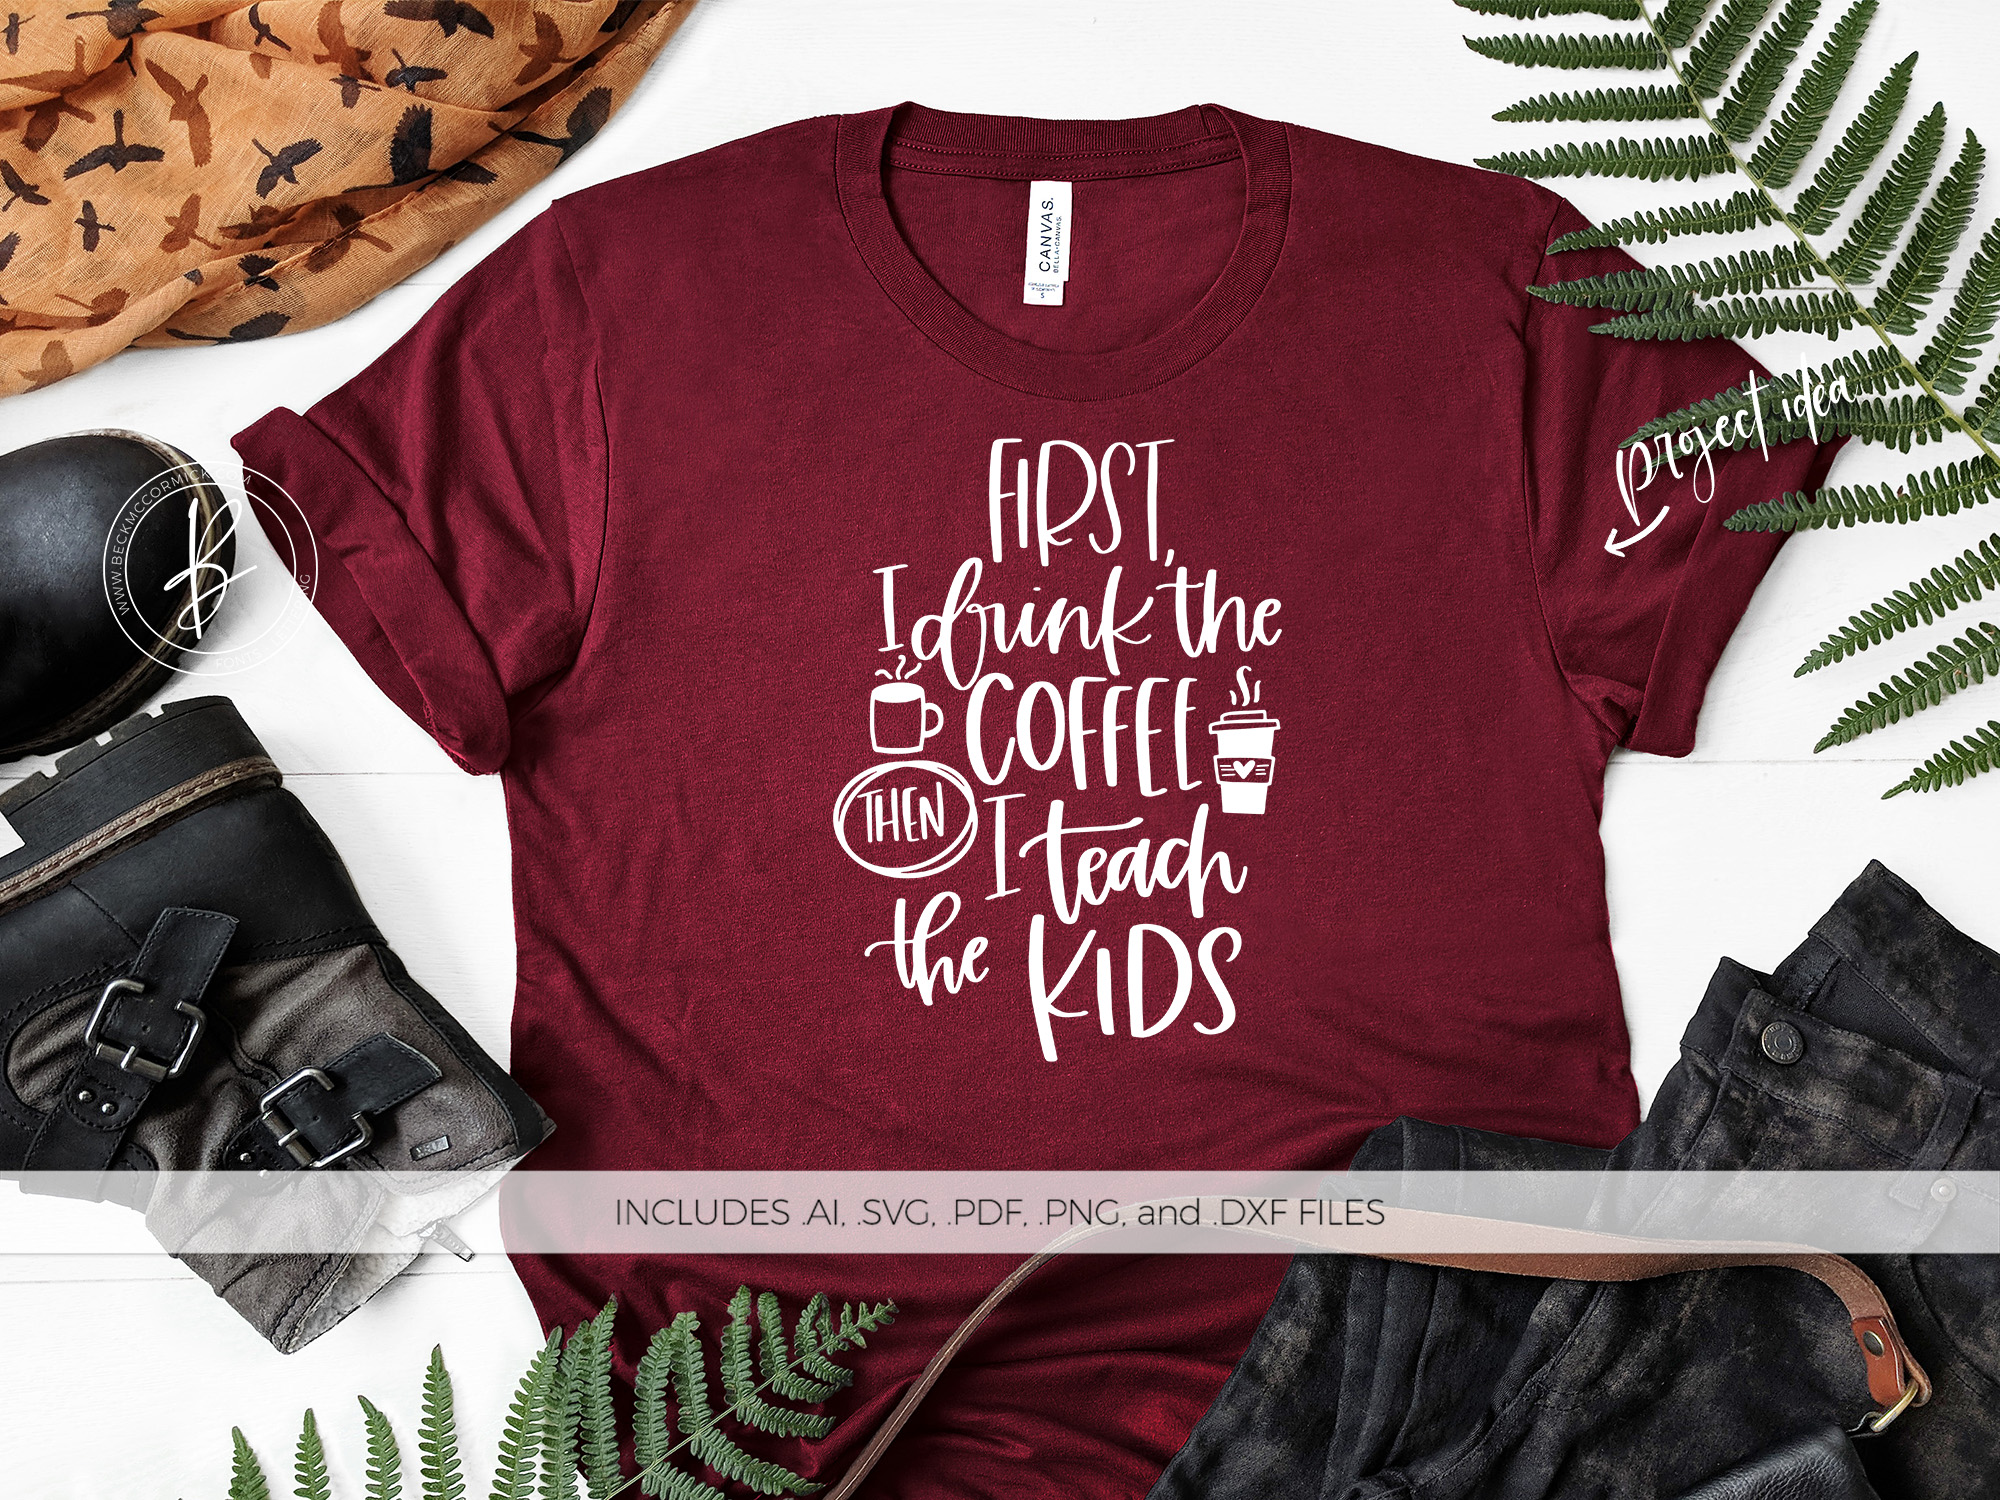 Download Free First I Drink The Coffee Teach The Kids Graphic By Beckmccormick for Cricut Explore, Silhouette and other cutting machines.